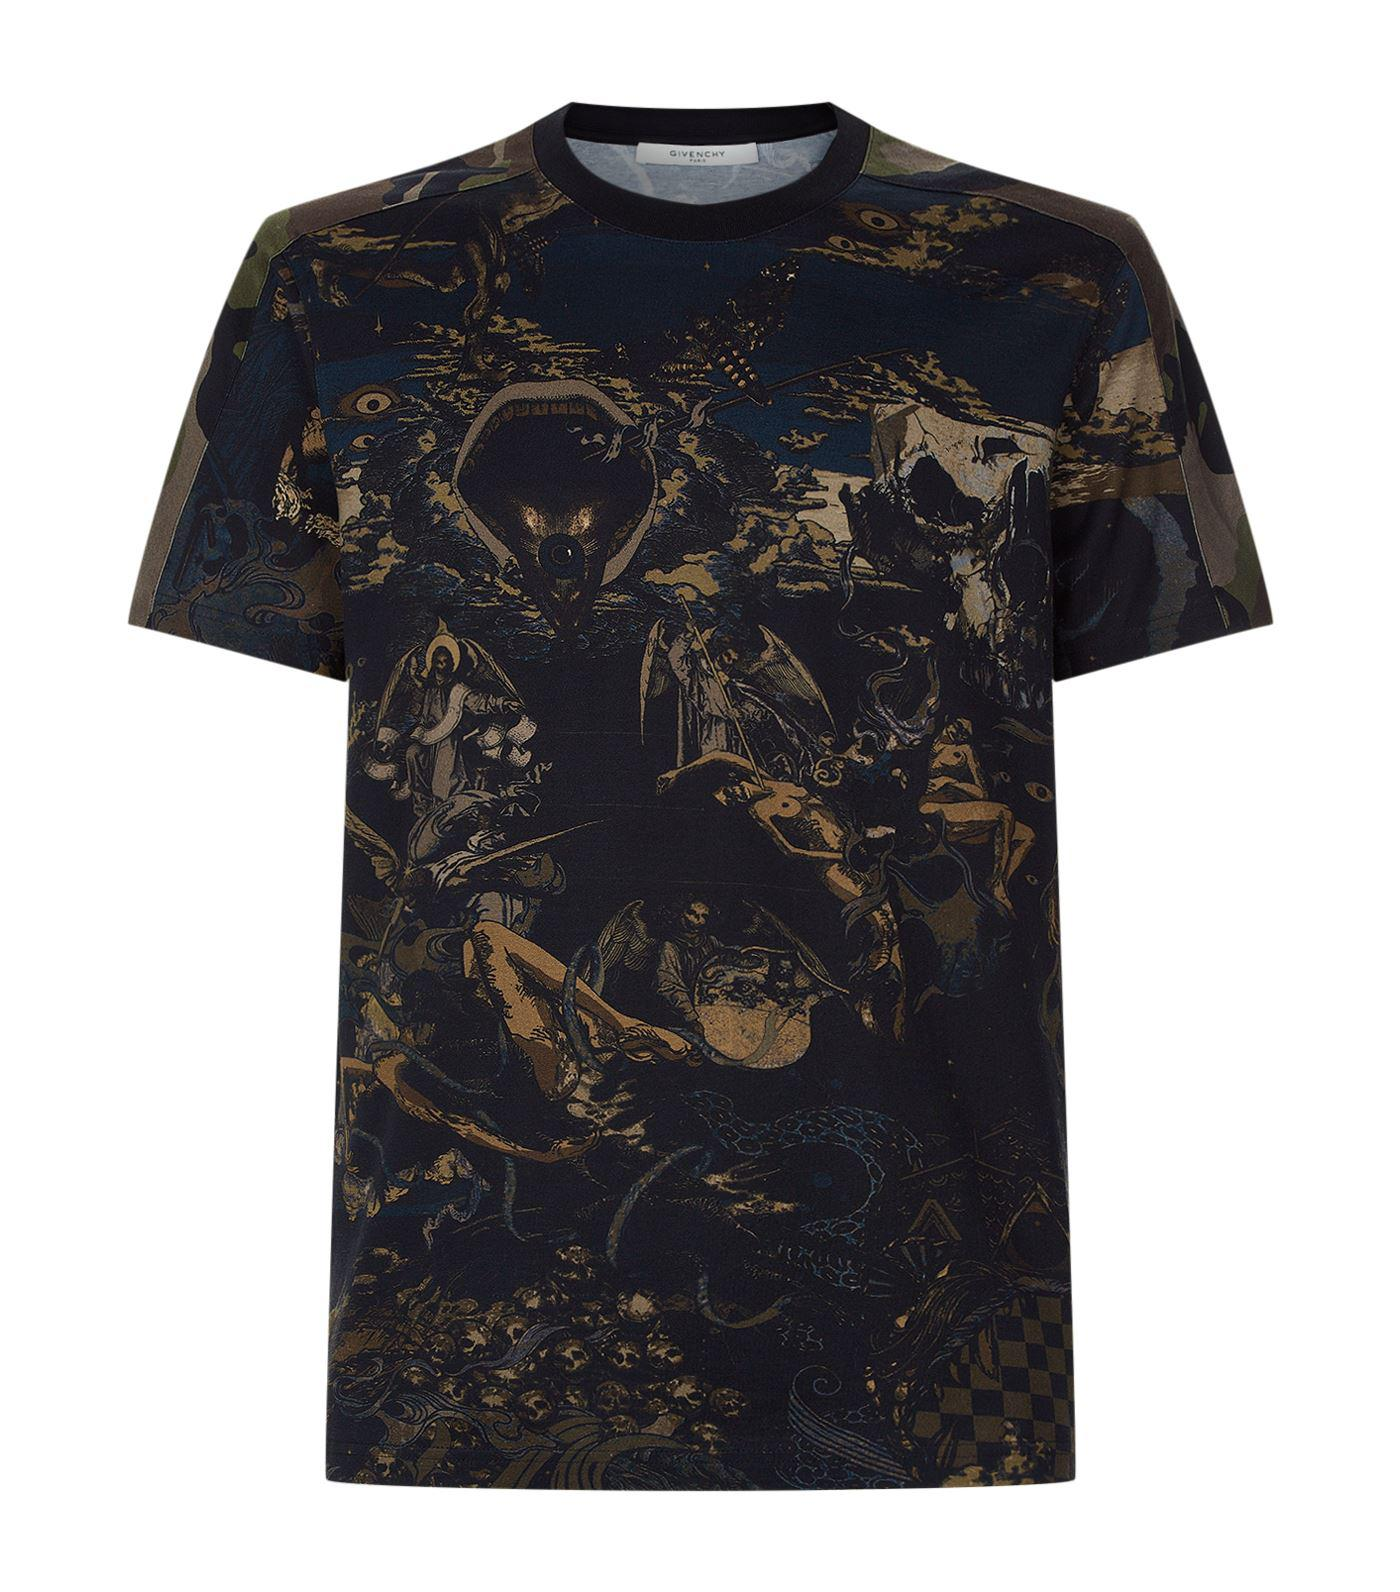 Lyst givenchy printed t shirt in blue for men Givenchy t shirt price